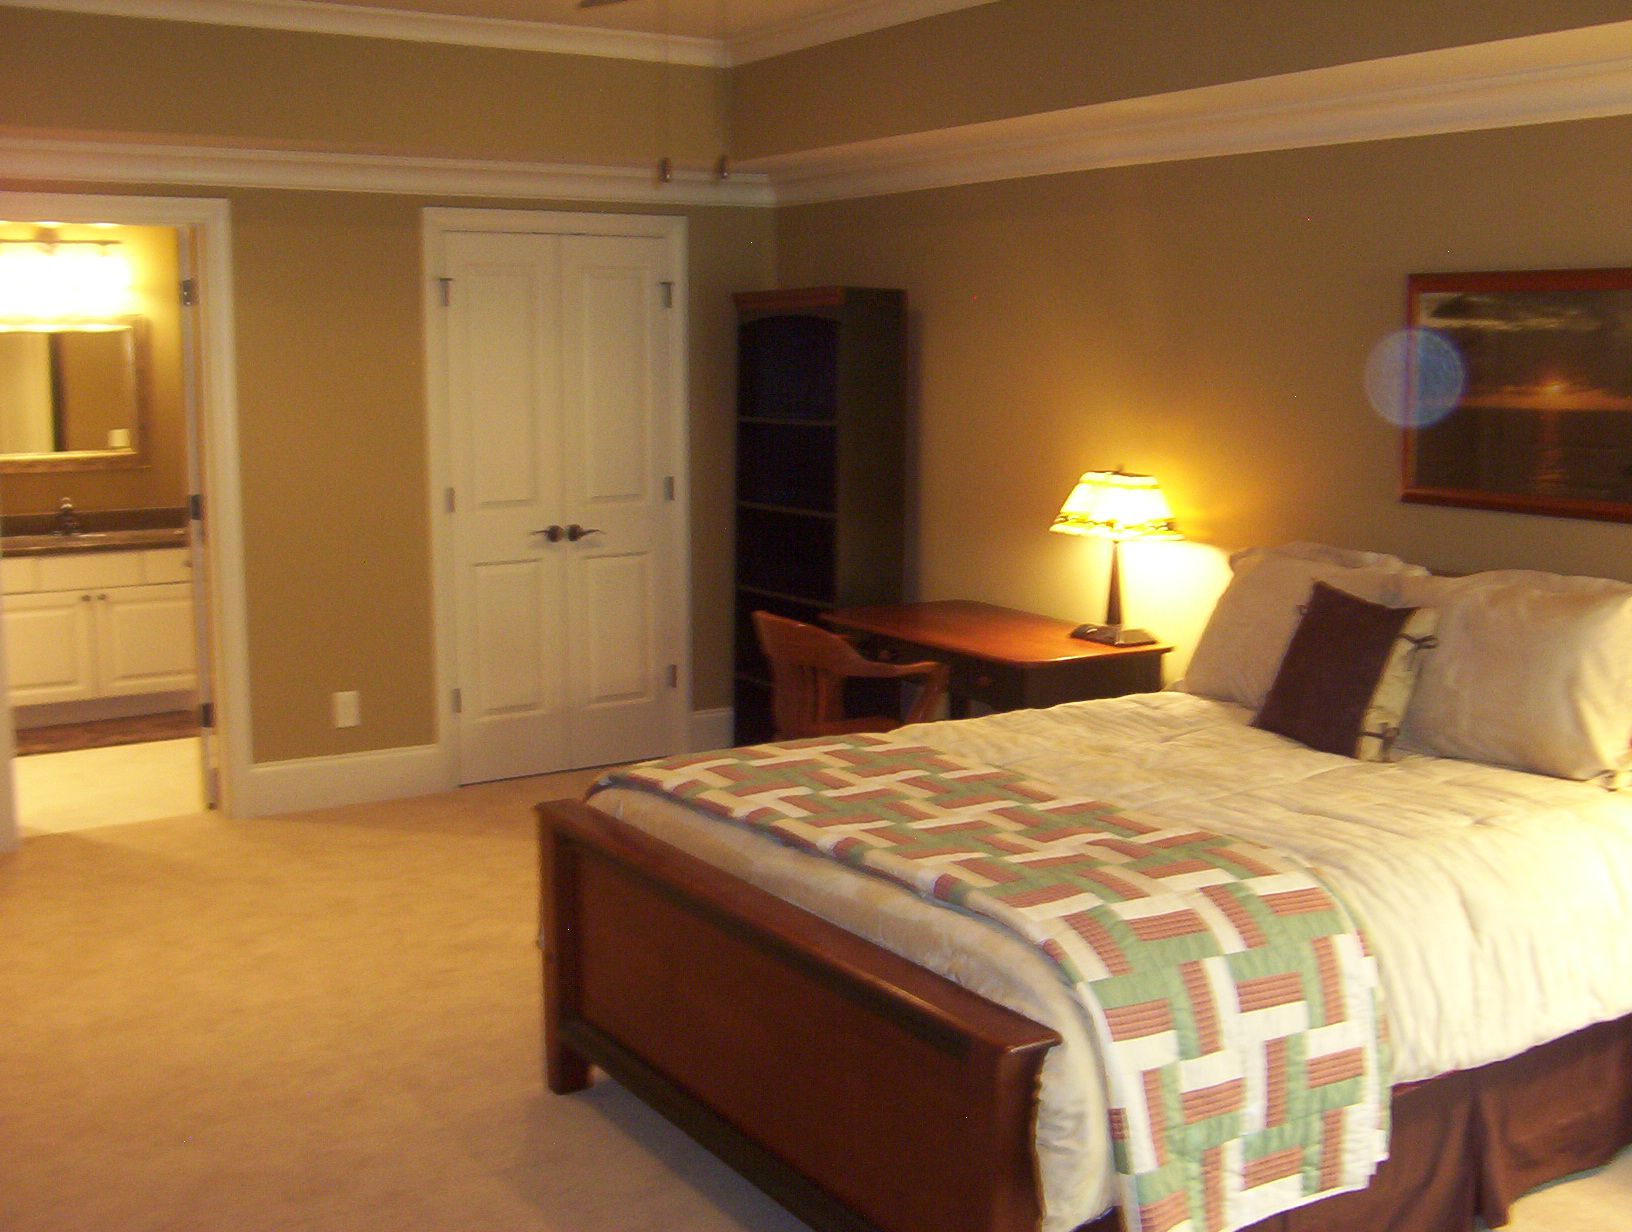 6 basement bedroom ideas to create perfect basement Basement room decorating ideas